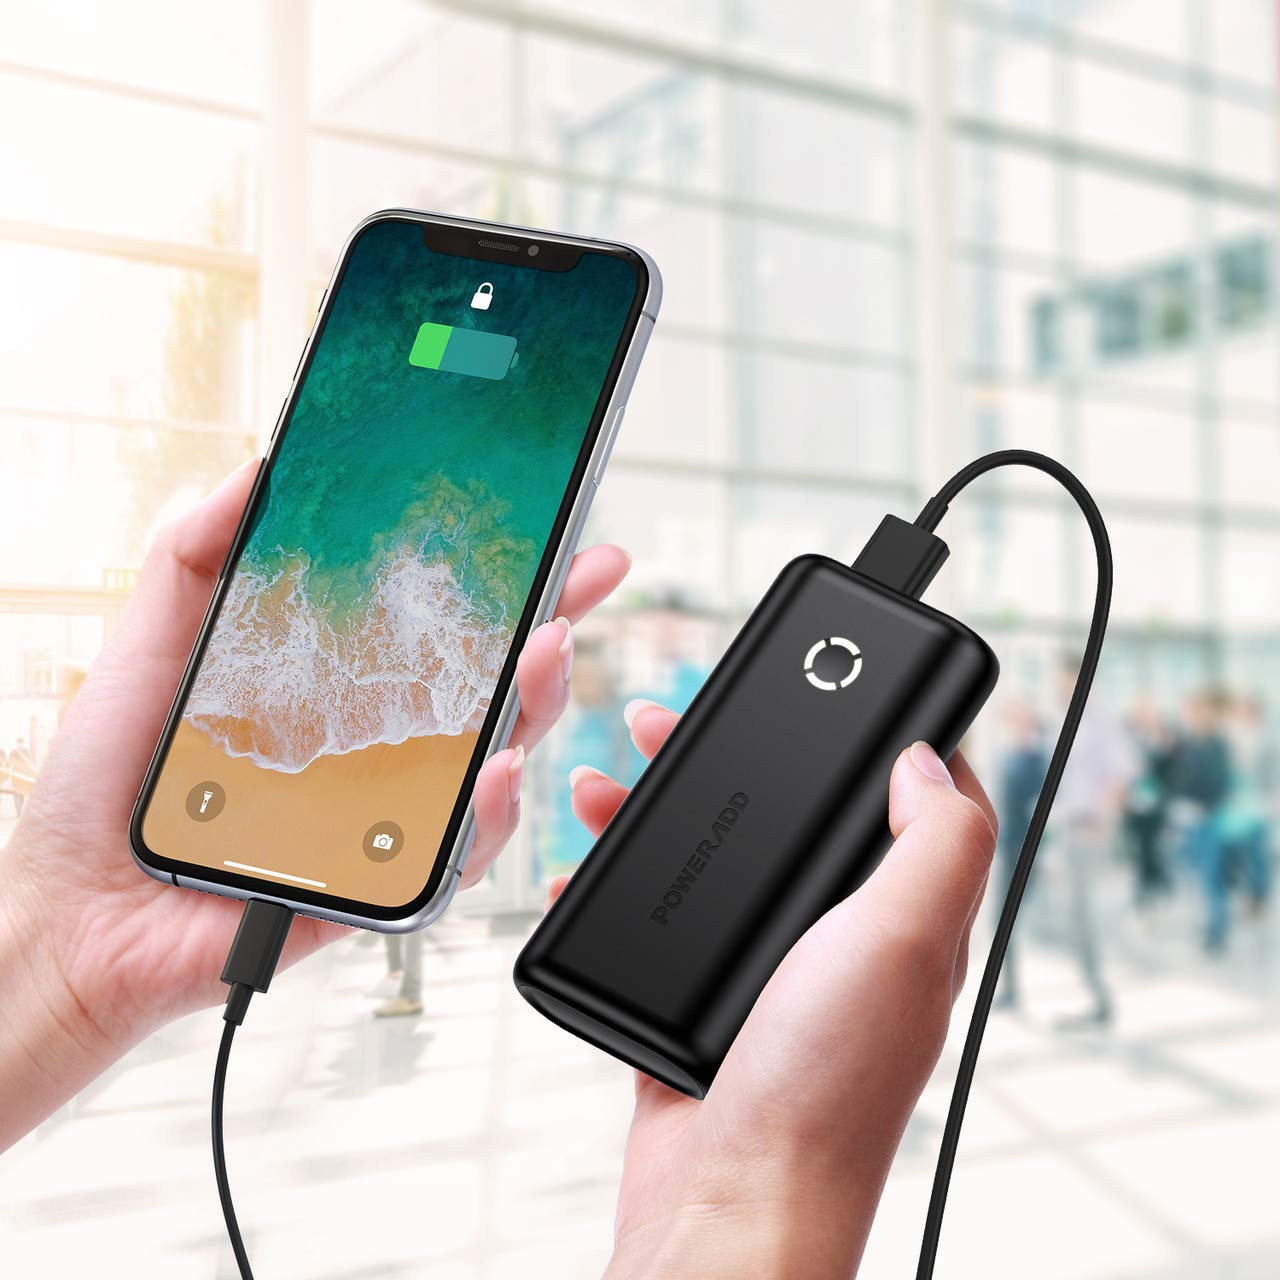 POWERADD EnergyCell 10000 UltraCompact HighSpeed Charging Portable Charger Smallest and Lightest